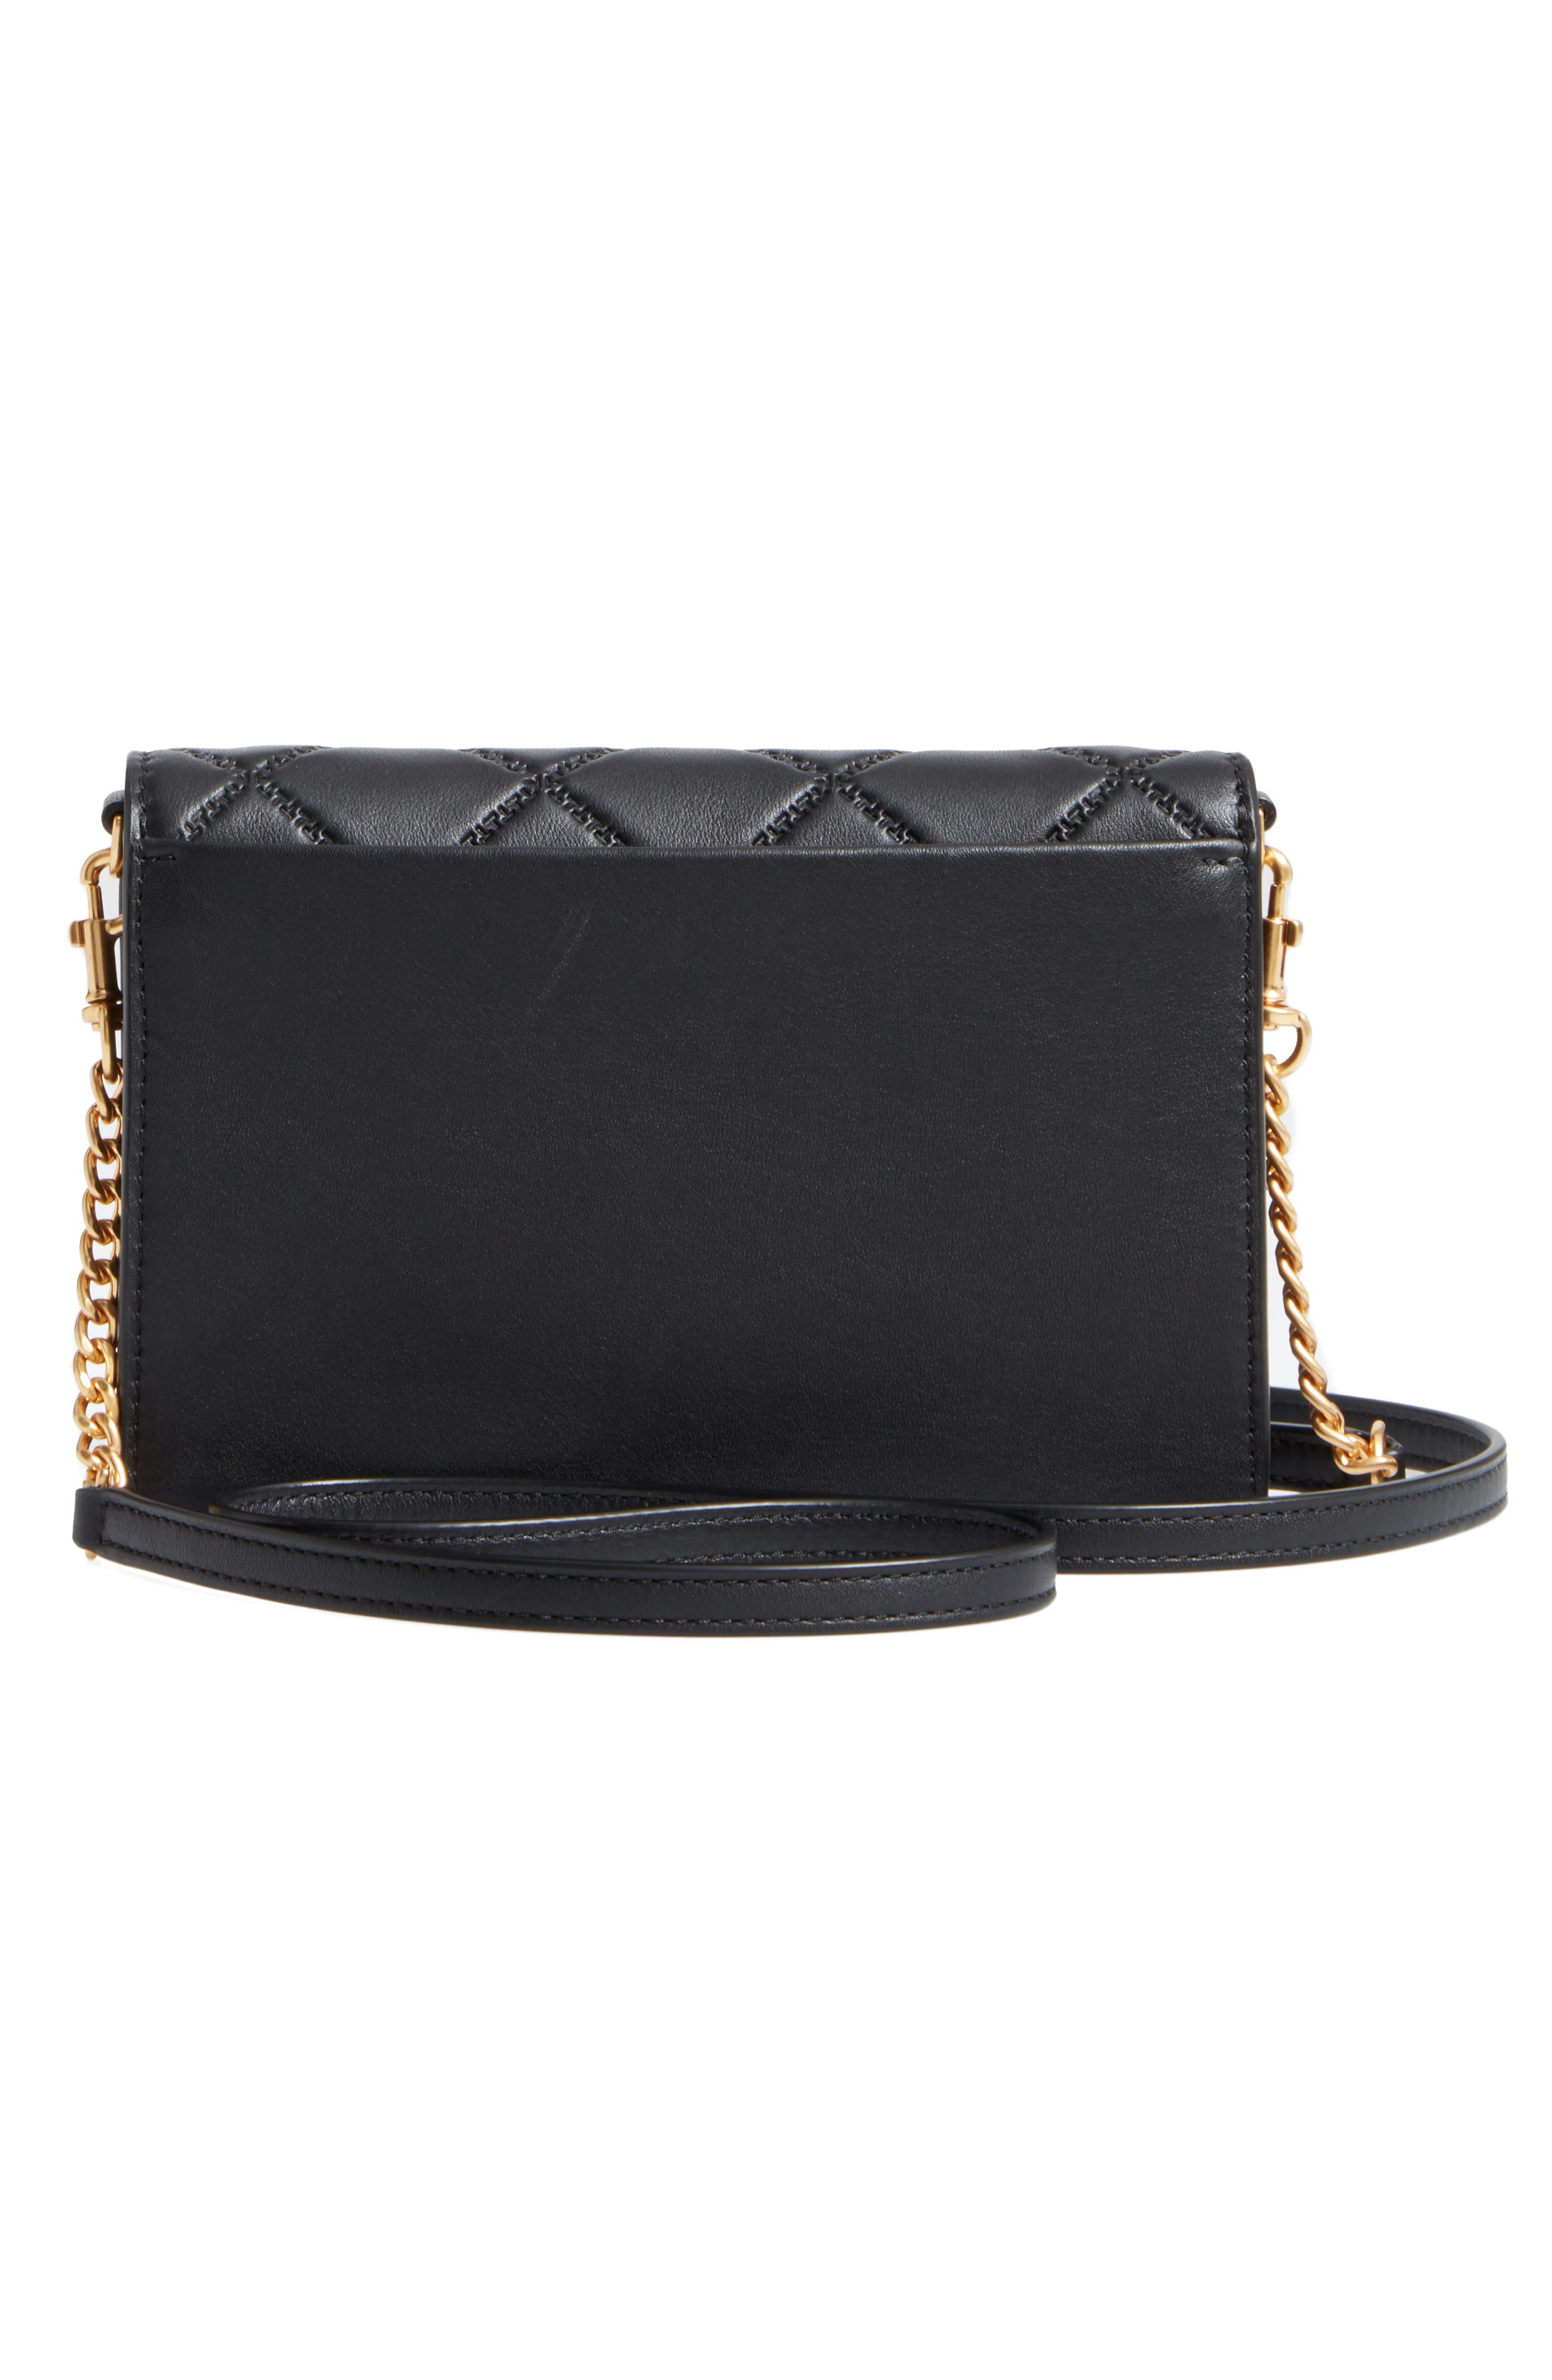 Mini Georgia Quilted Leather Shoulder Bag,                             Alternate thumbnail 2, color,                             Black